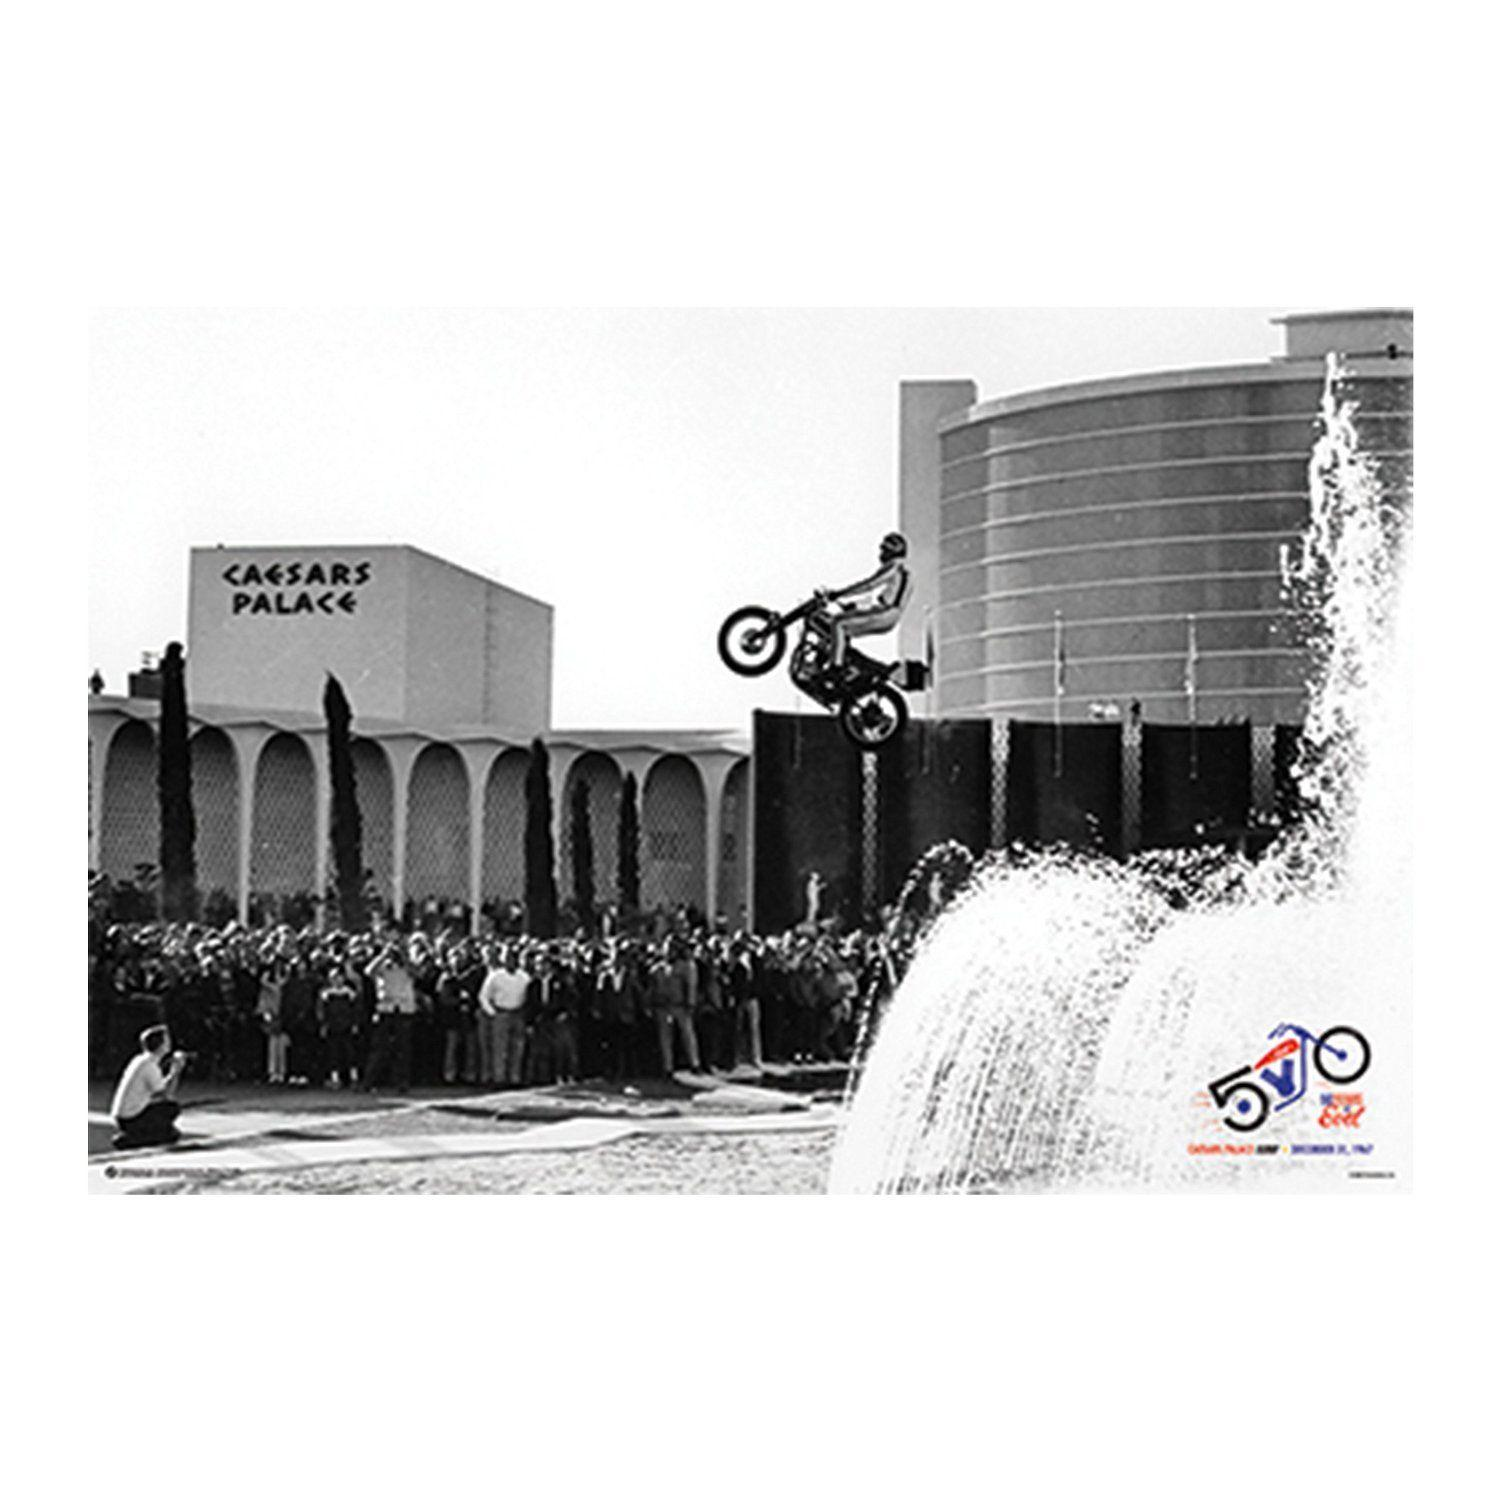 Evel knievel caesars jump art silk poster 24x36inch 24x43inch 058 stickers for bedroom walls removable stickers for decorating walls from wangzhi hao8